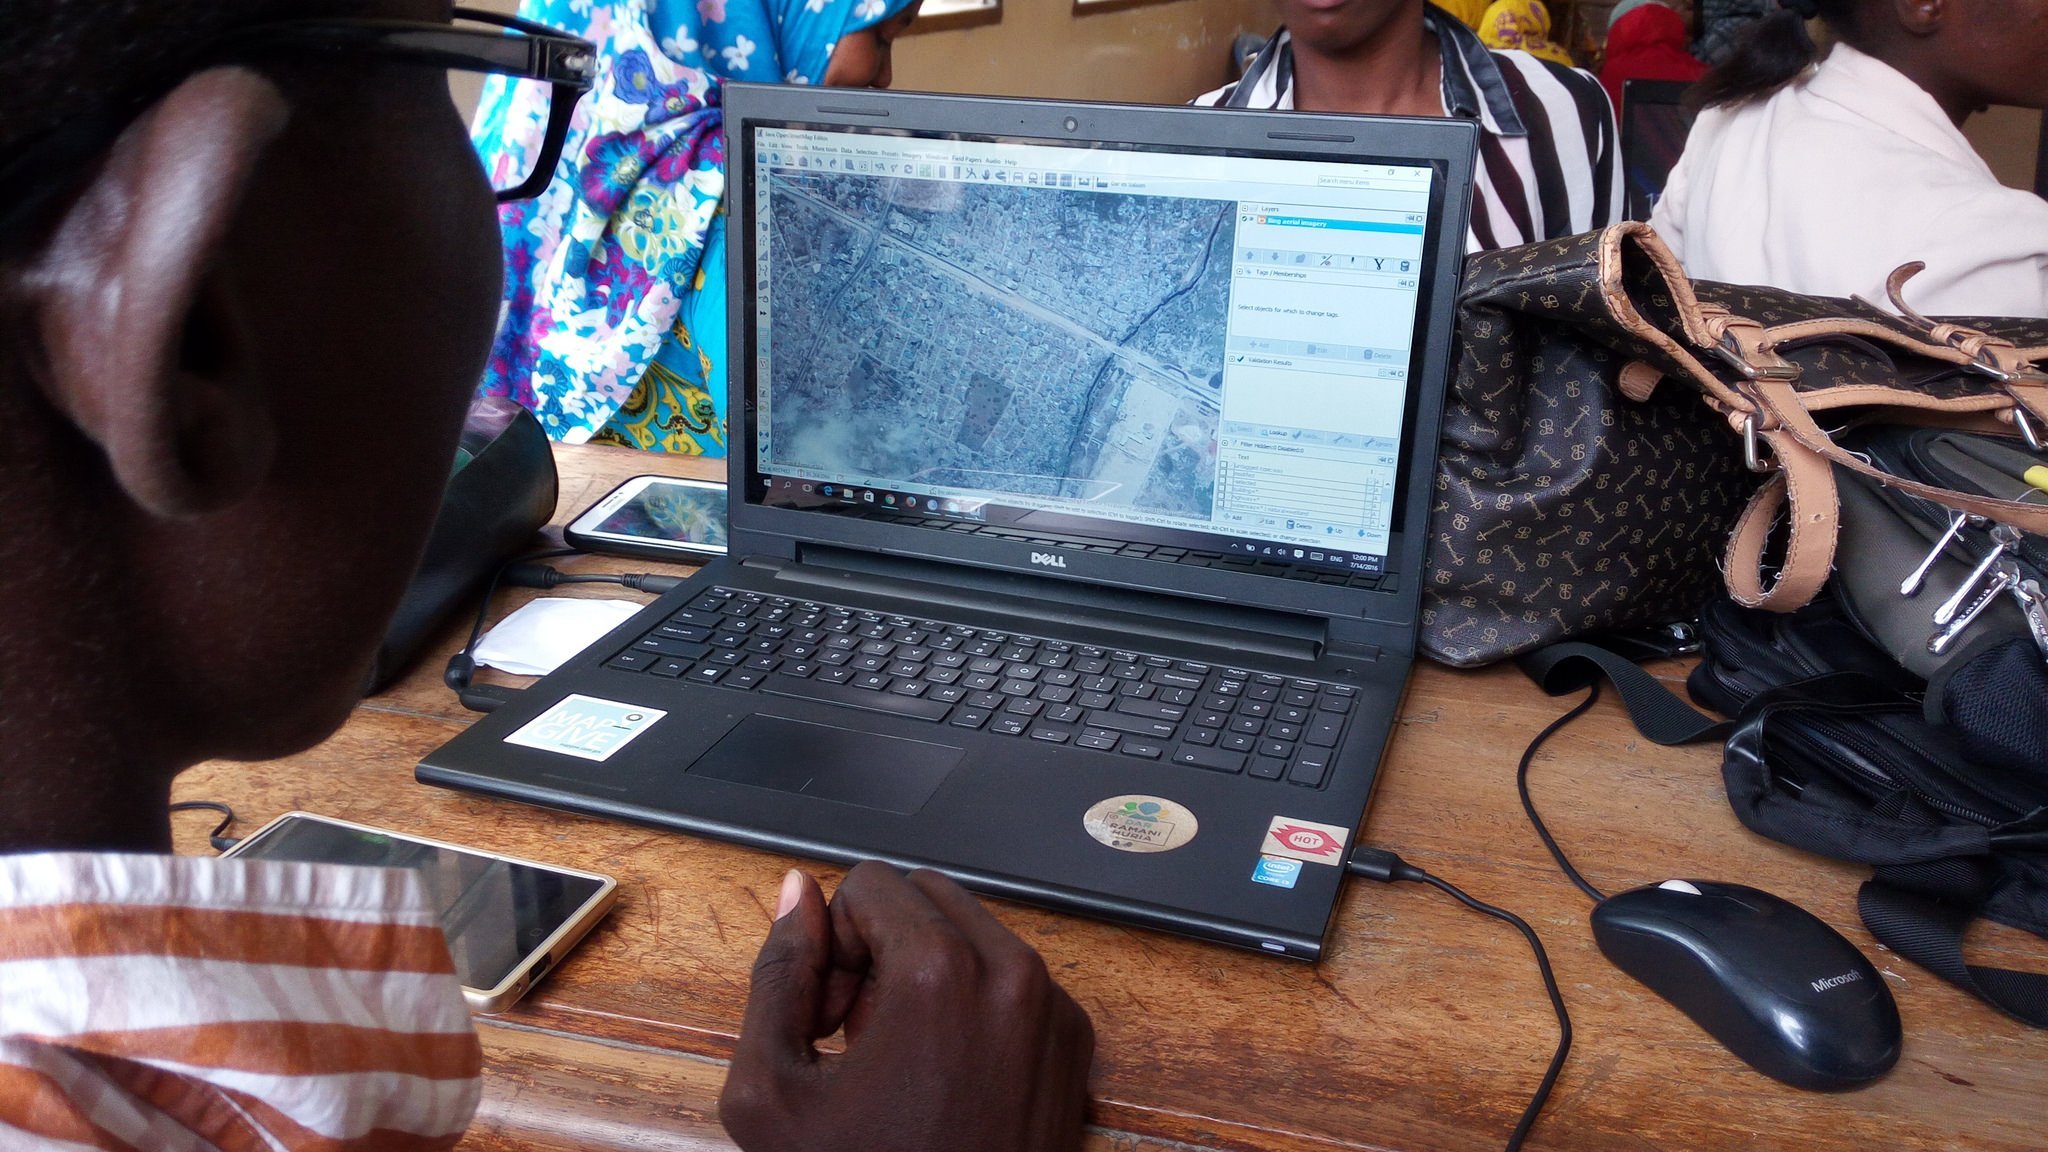 Tanzania's preparedness for climate challenges is supported by cooperation between the Geo-ICT partners